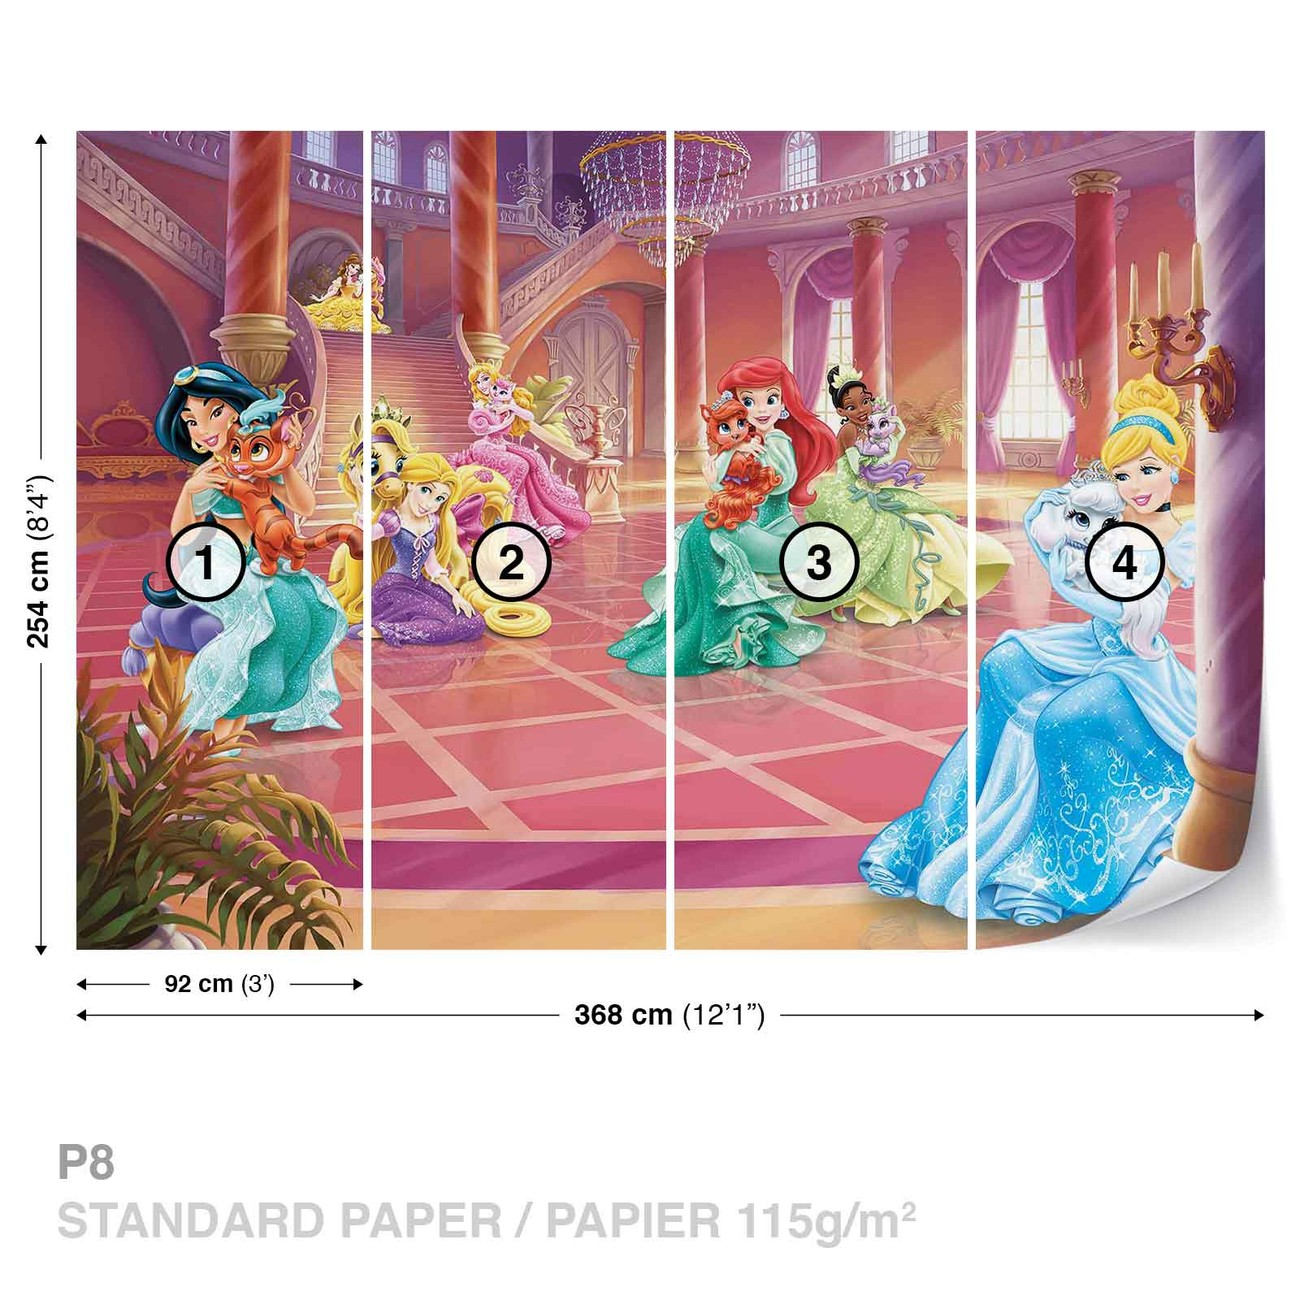 Disney princesses cinderella jasmine wall paper mural for Disney princess mural asda